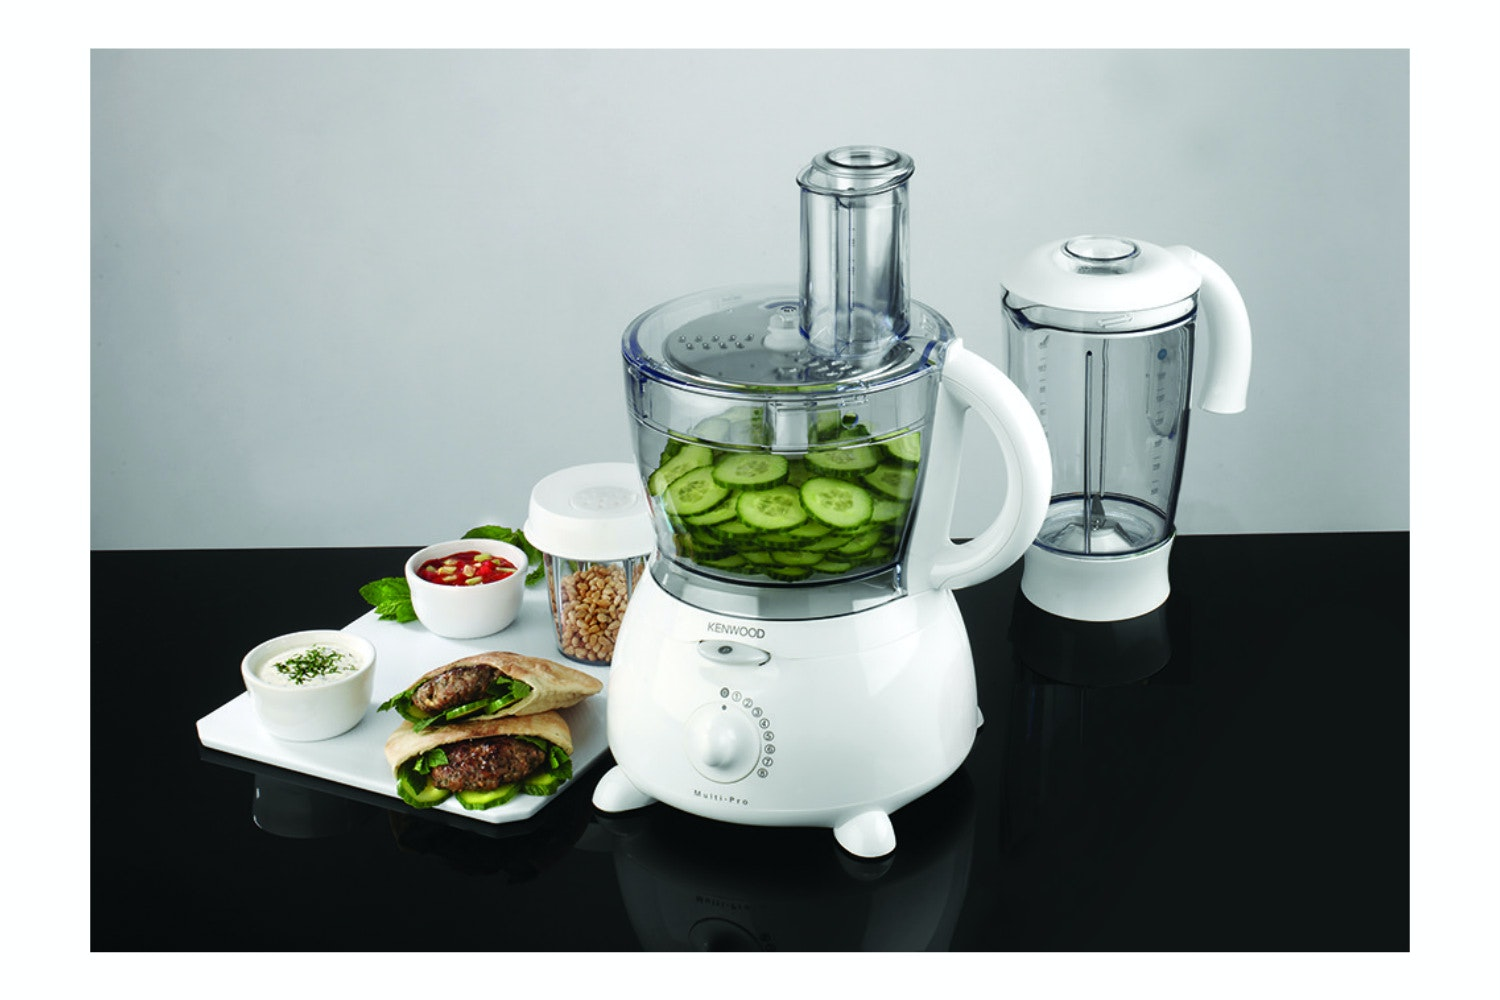 Kenwood Food Processor | FP691